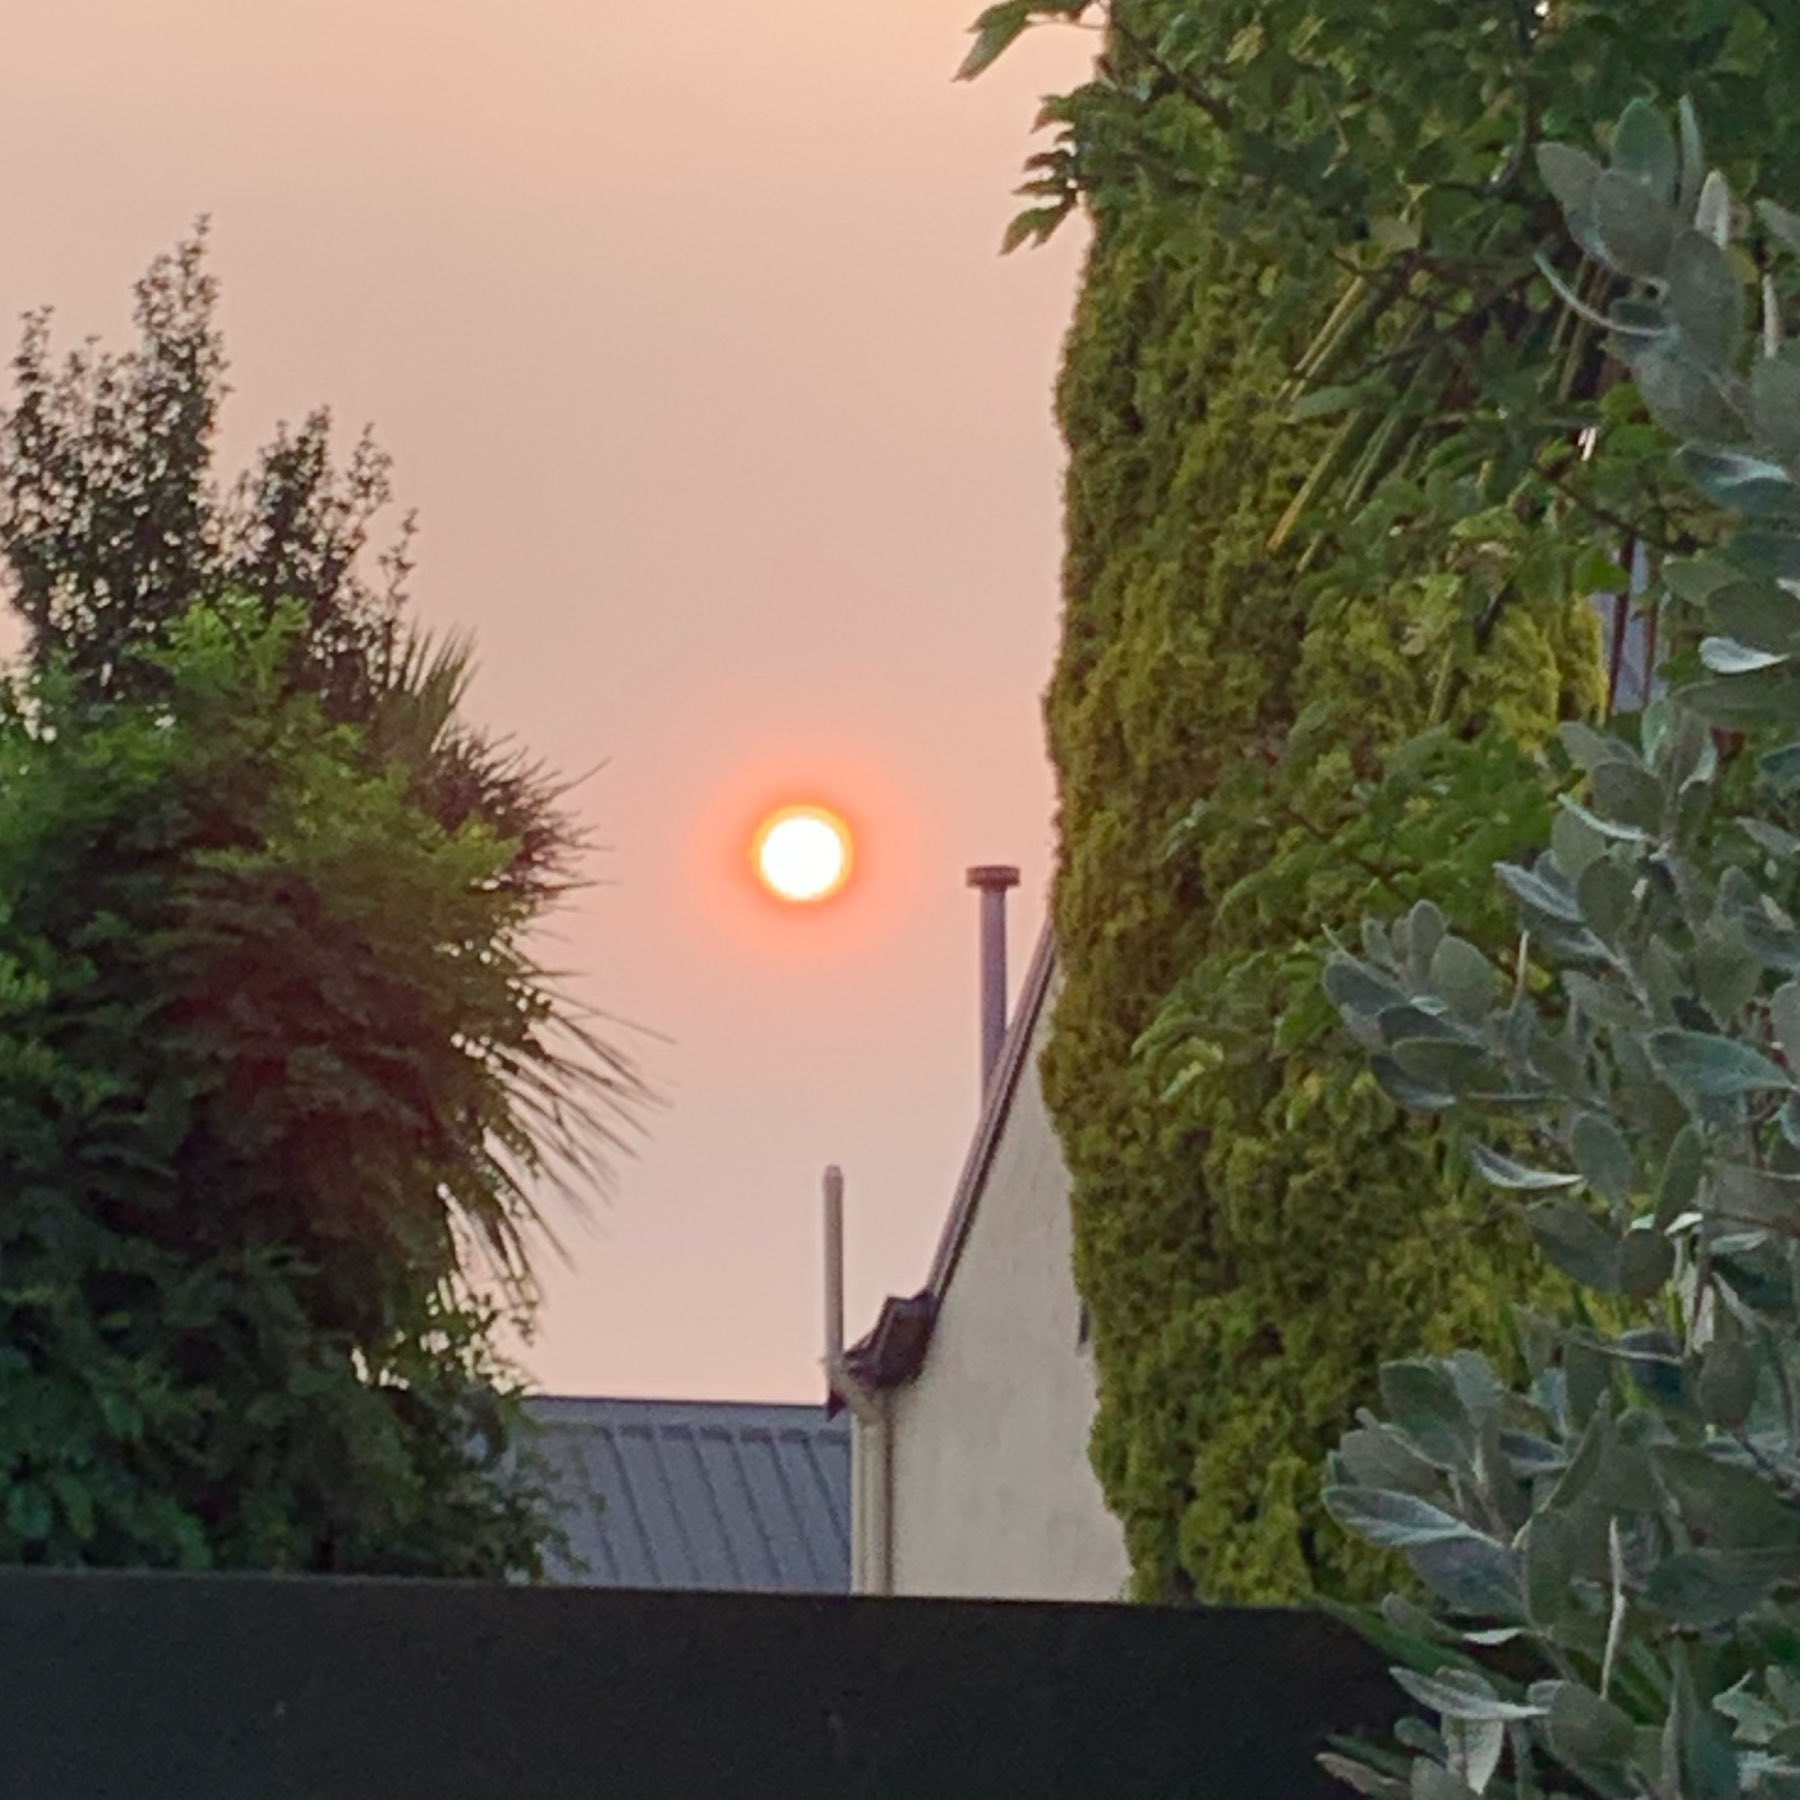 The sun, about an hour before setting, loking extremely orange/red thanks to particles of ash